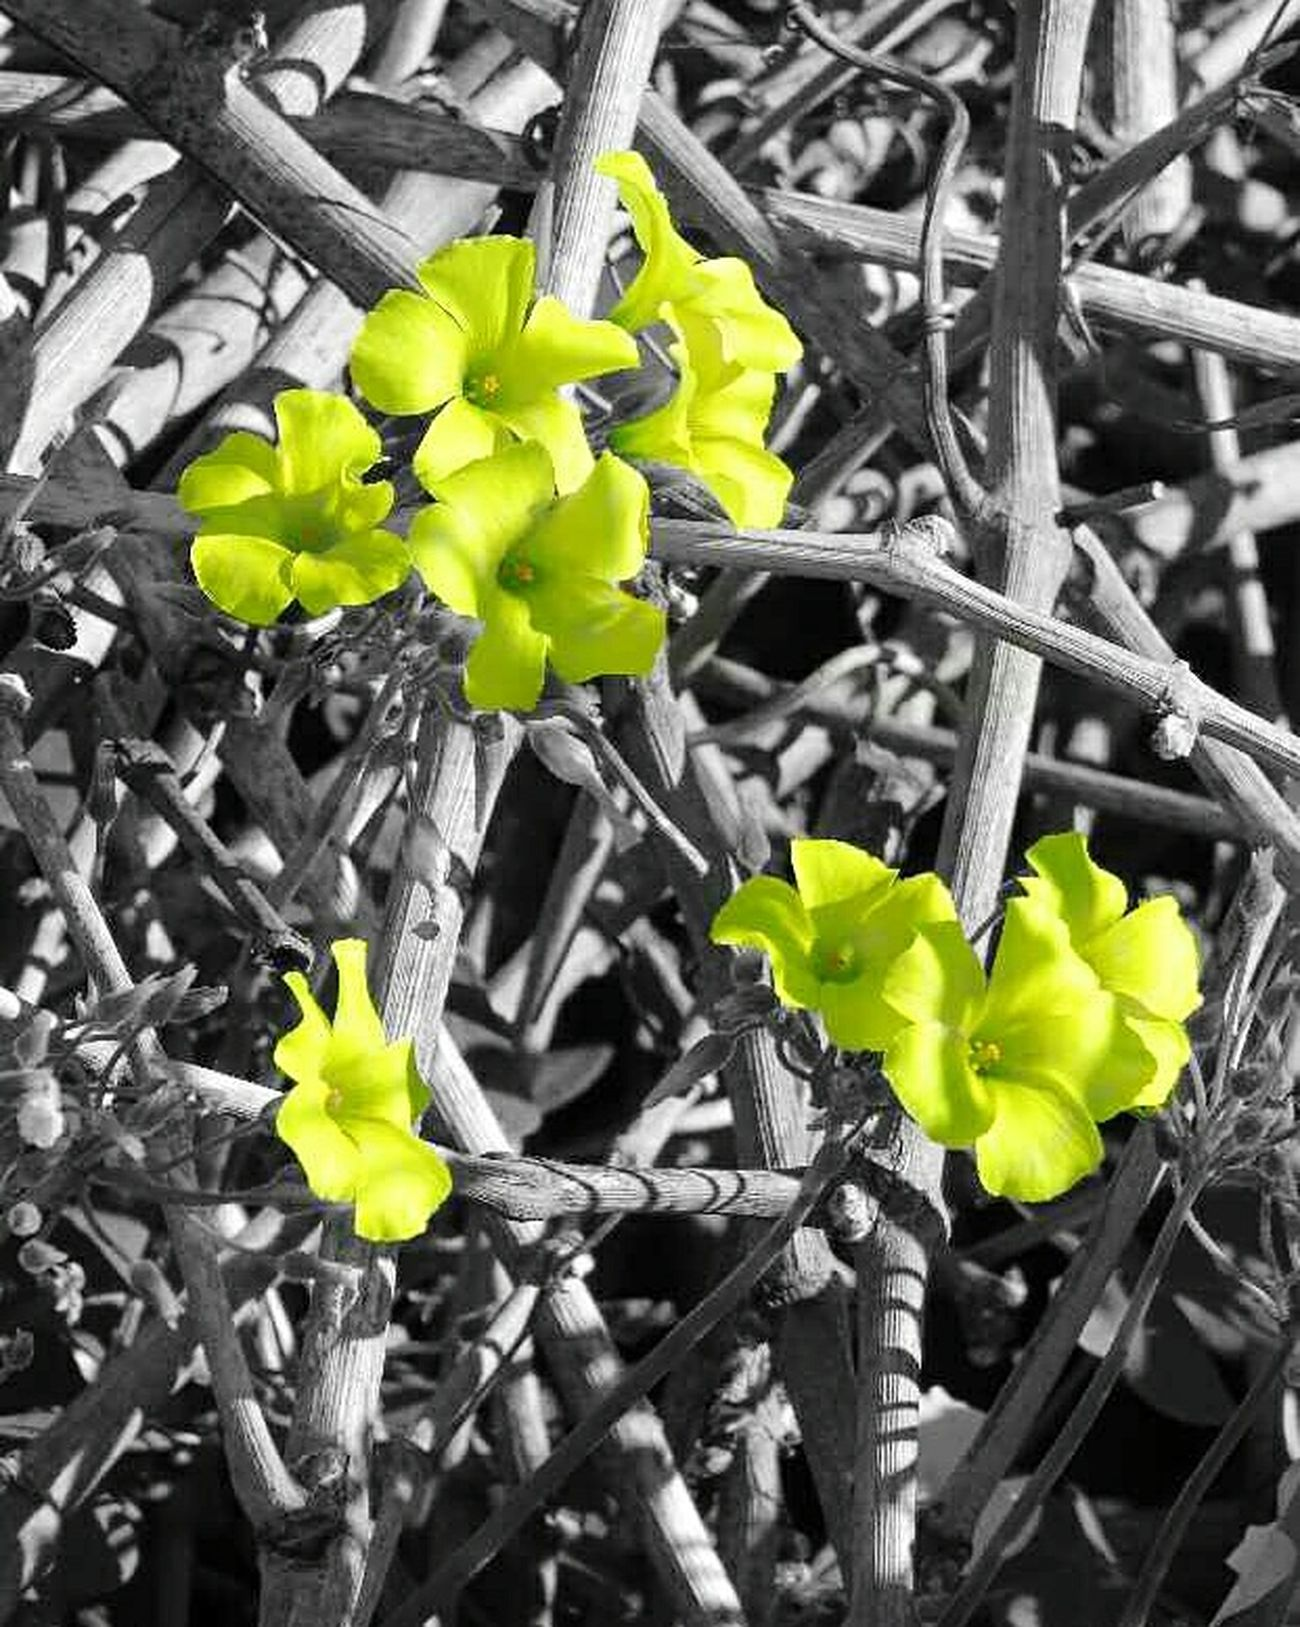 Plant Growth Nature Close-up Yellow Leaf Outdoors Flower Beauty In Nature Day Freshness Blackandwhite Nature Morning Nature_collection EyeEmNewHere Beauty In Nature Nature Photography Spring EyeEm Best Shots Eyeemphotography Brunches Leaves Petals Greece